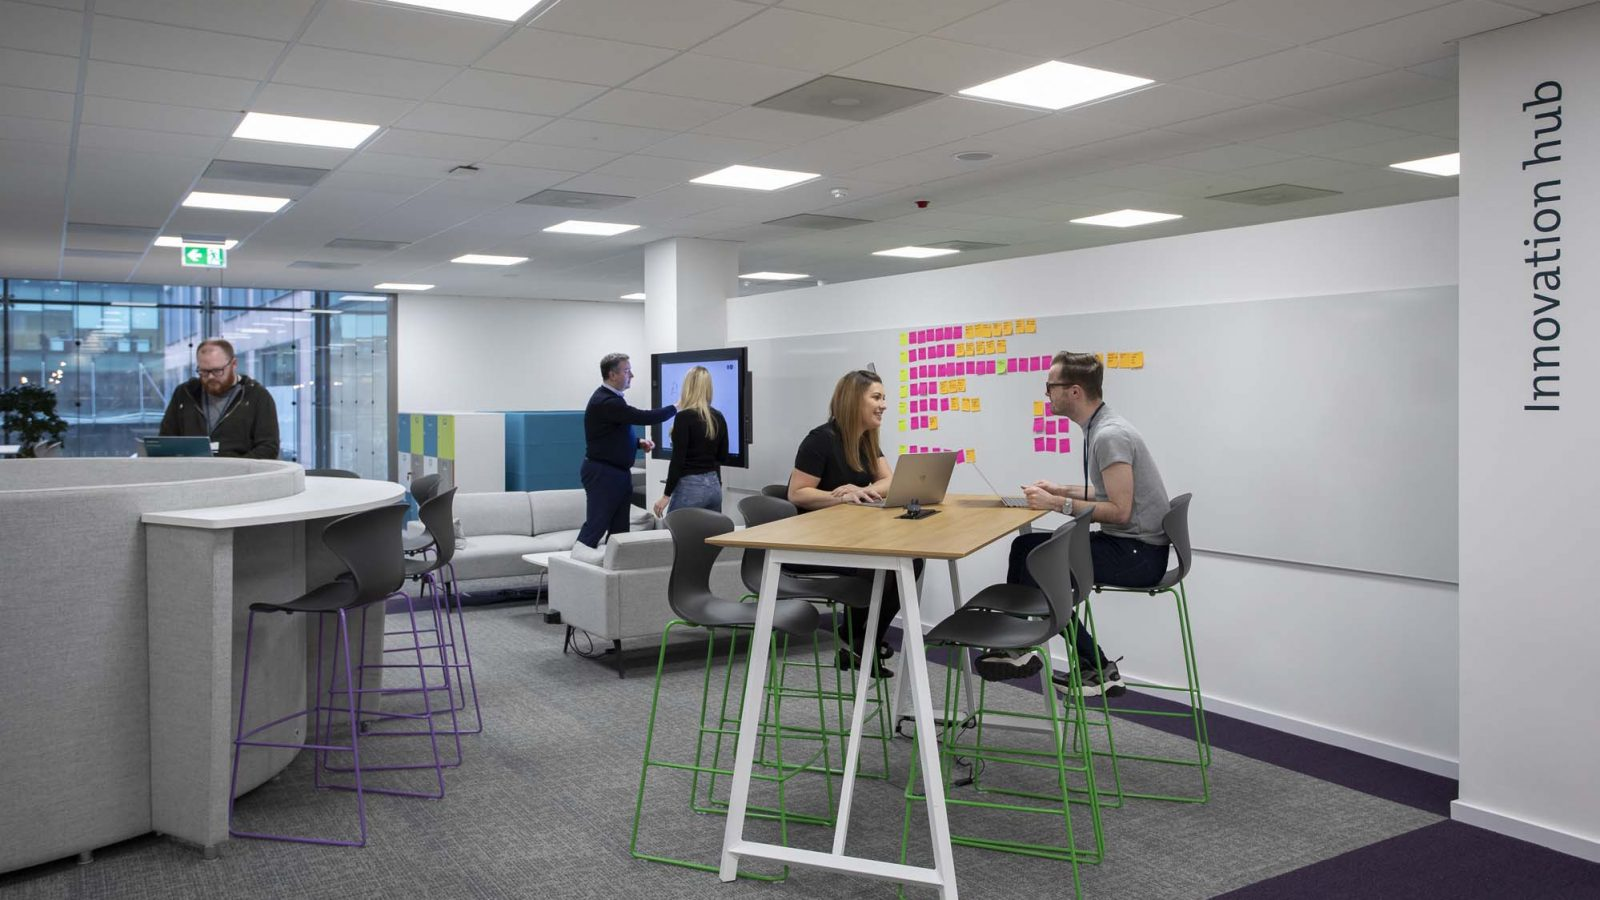 9 Ways to Embed Culture in Your Workplace